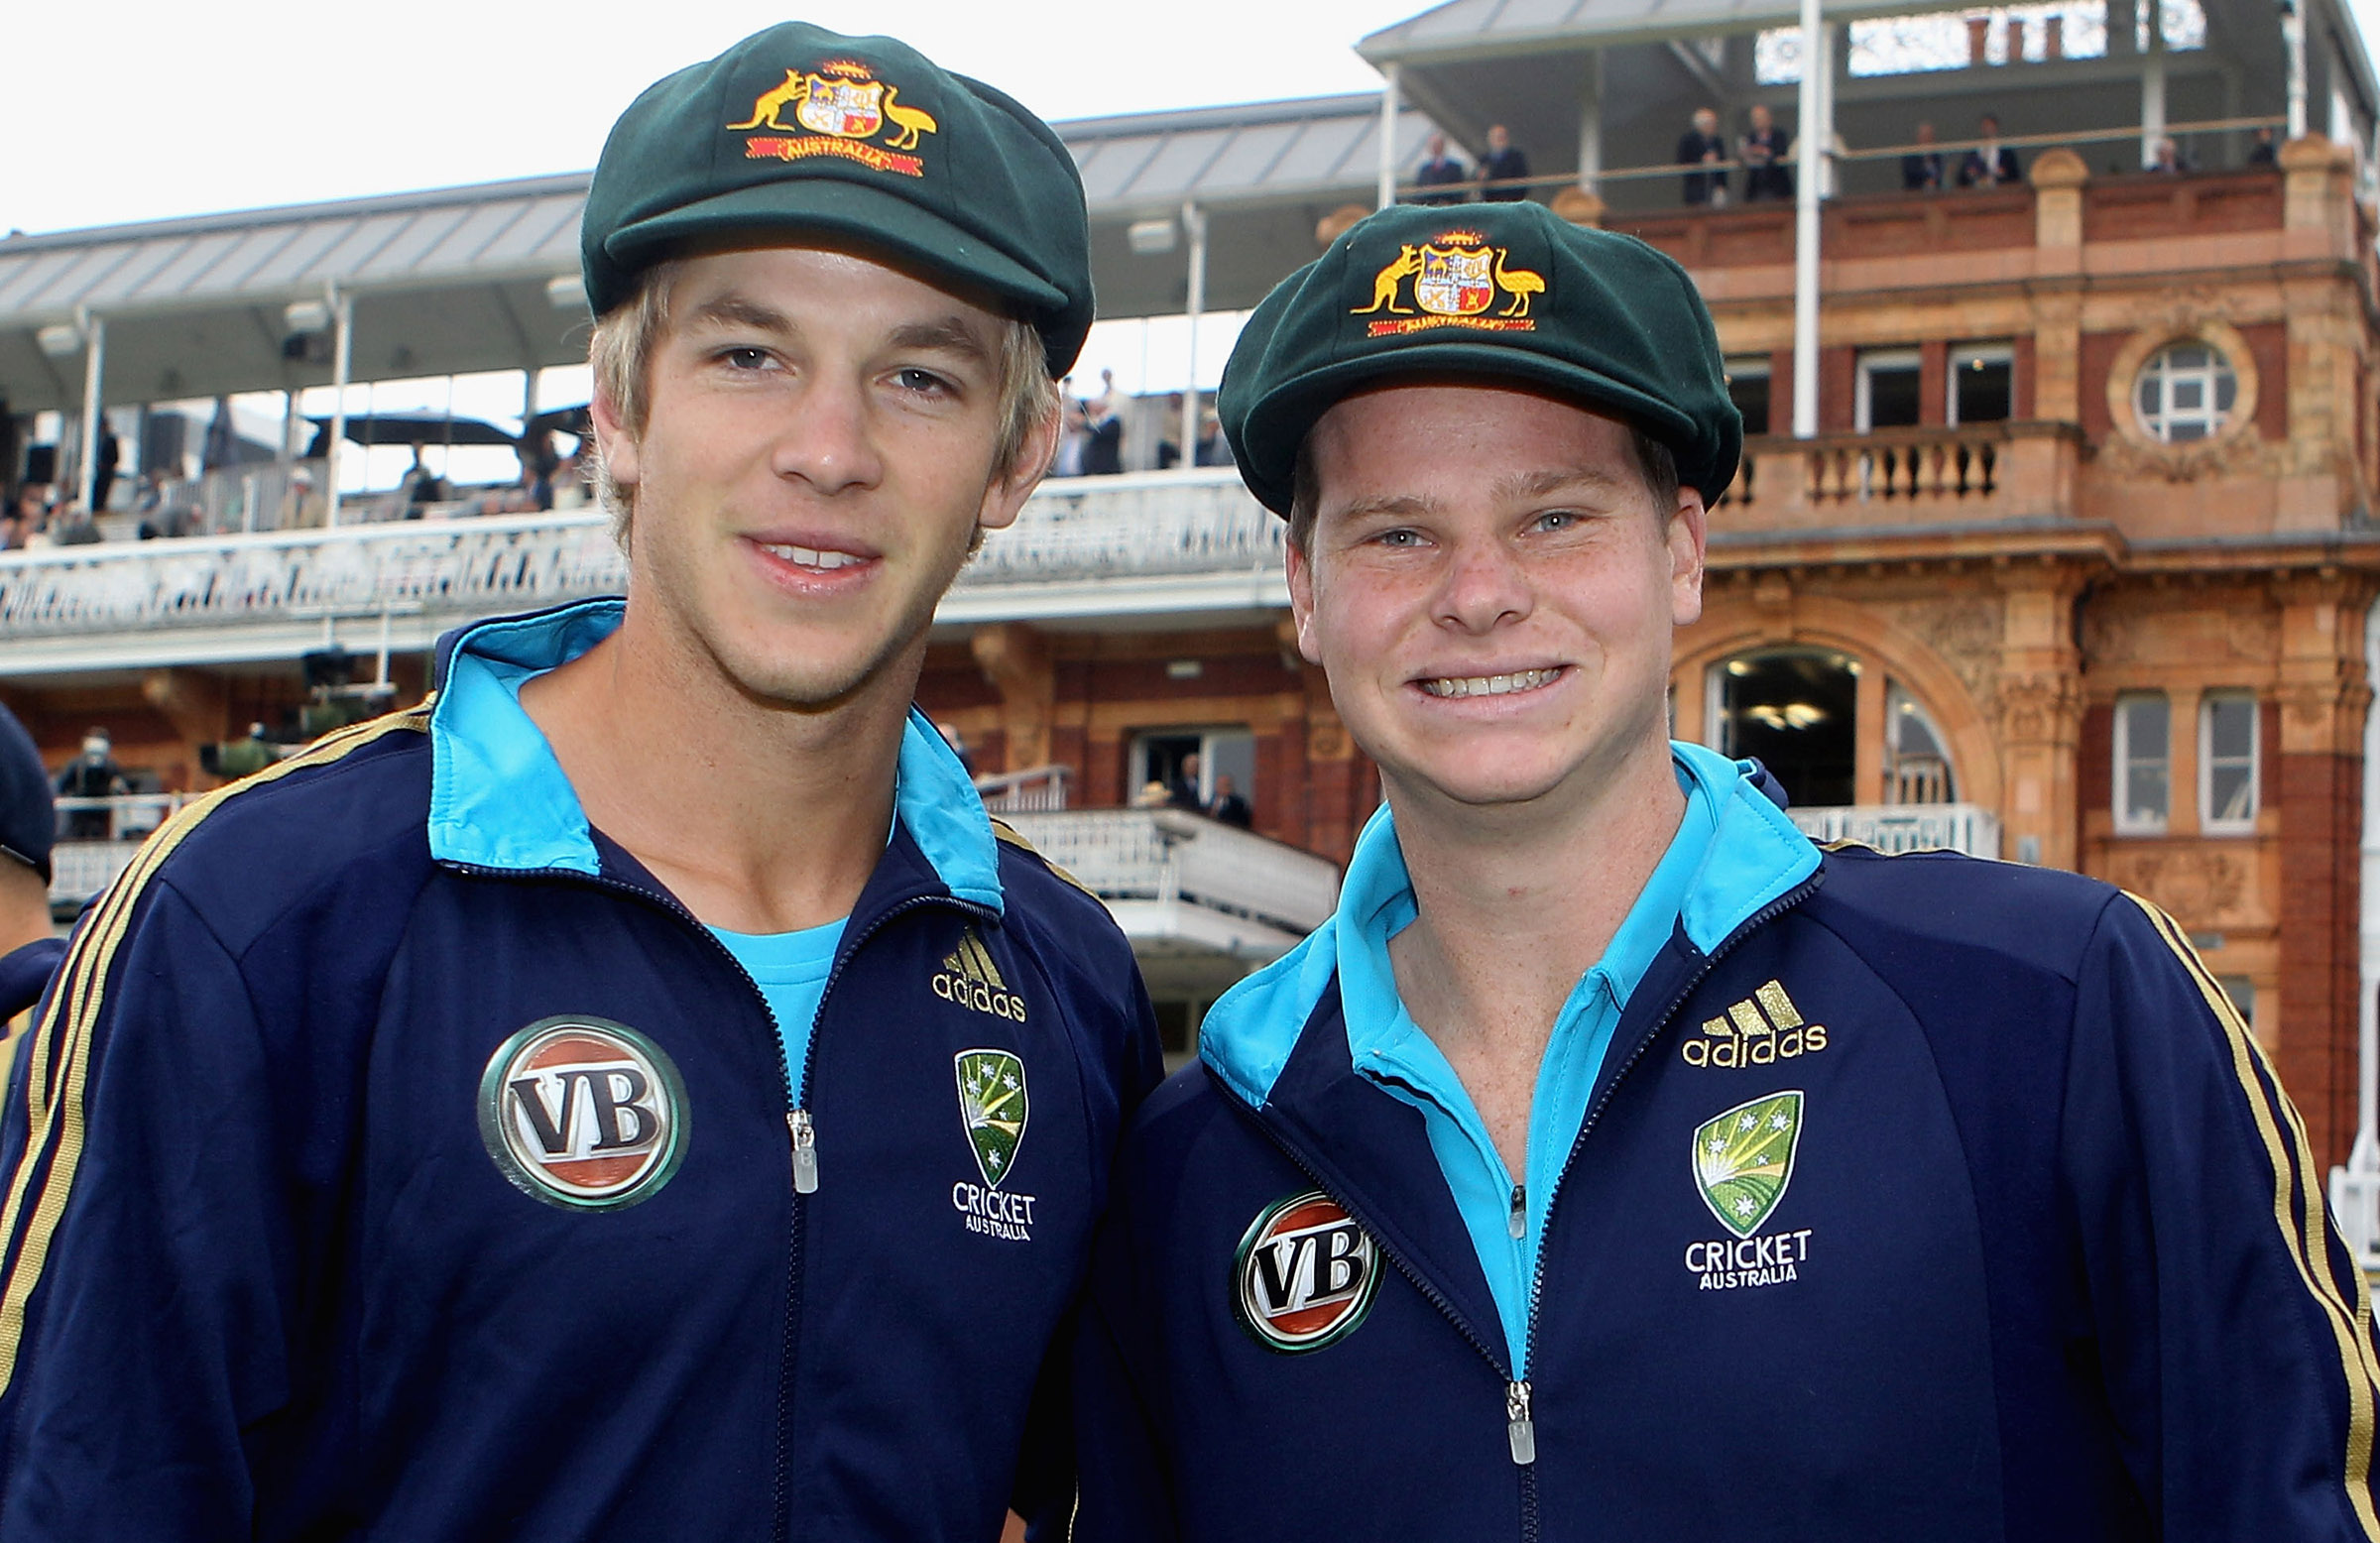 Paine and Smith make their debut together at Lord's in 2010 // Getty